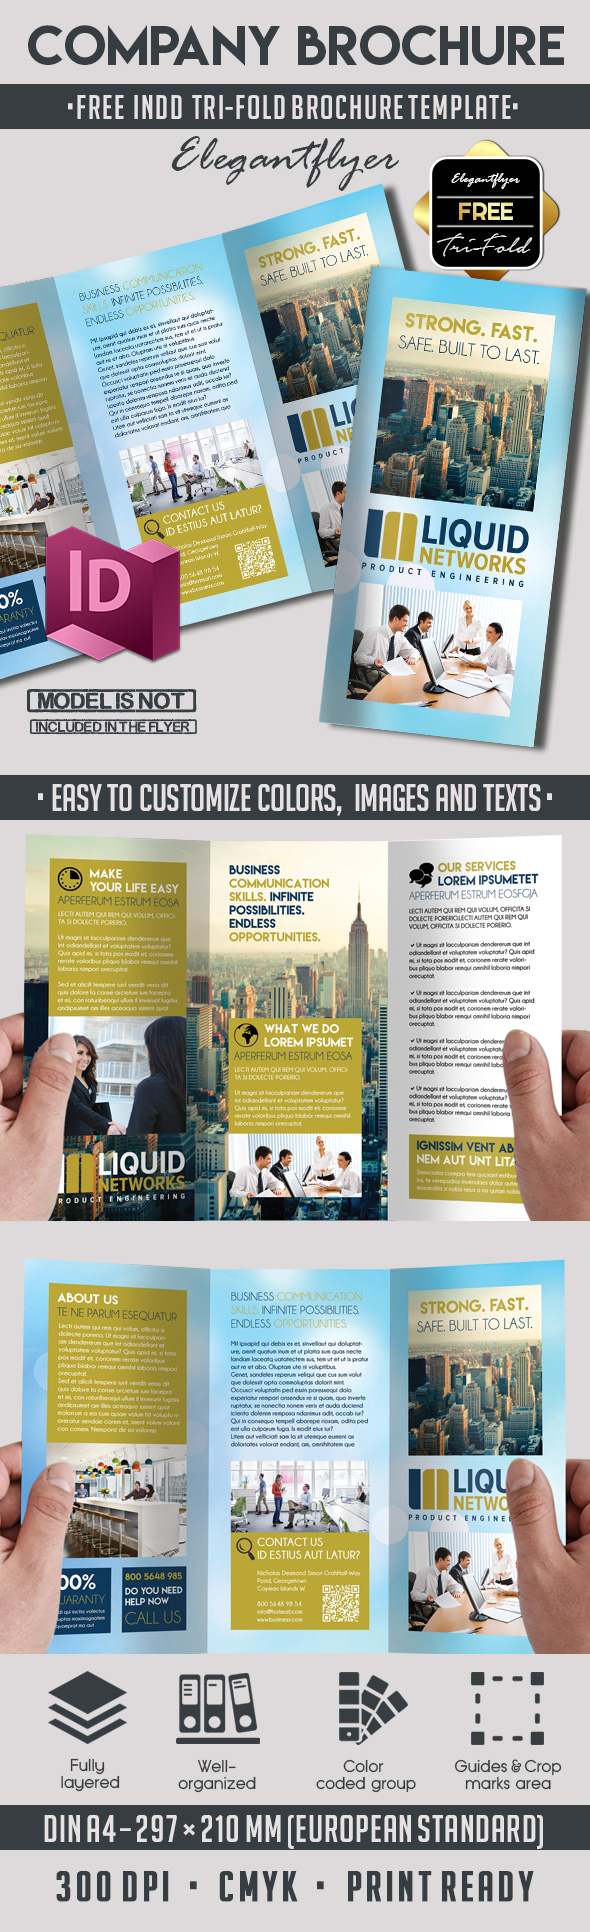 5 powerful free adobe indesign brochures templates by for Indesign brochure templates free